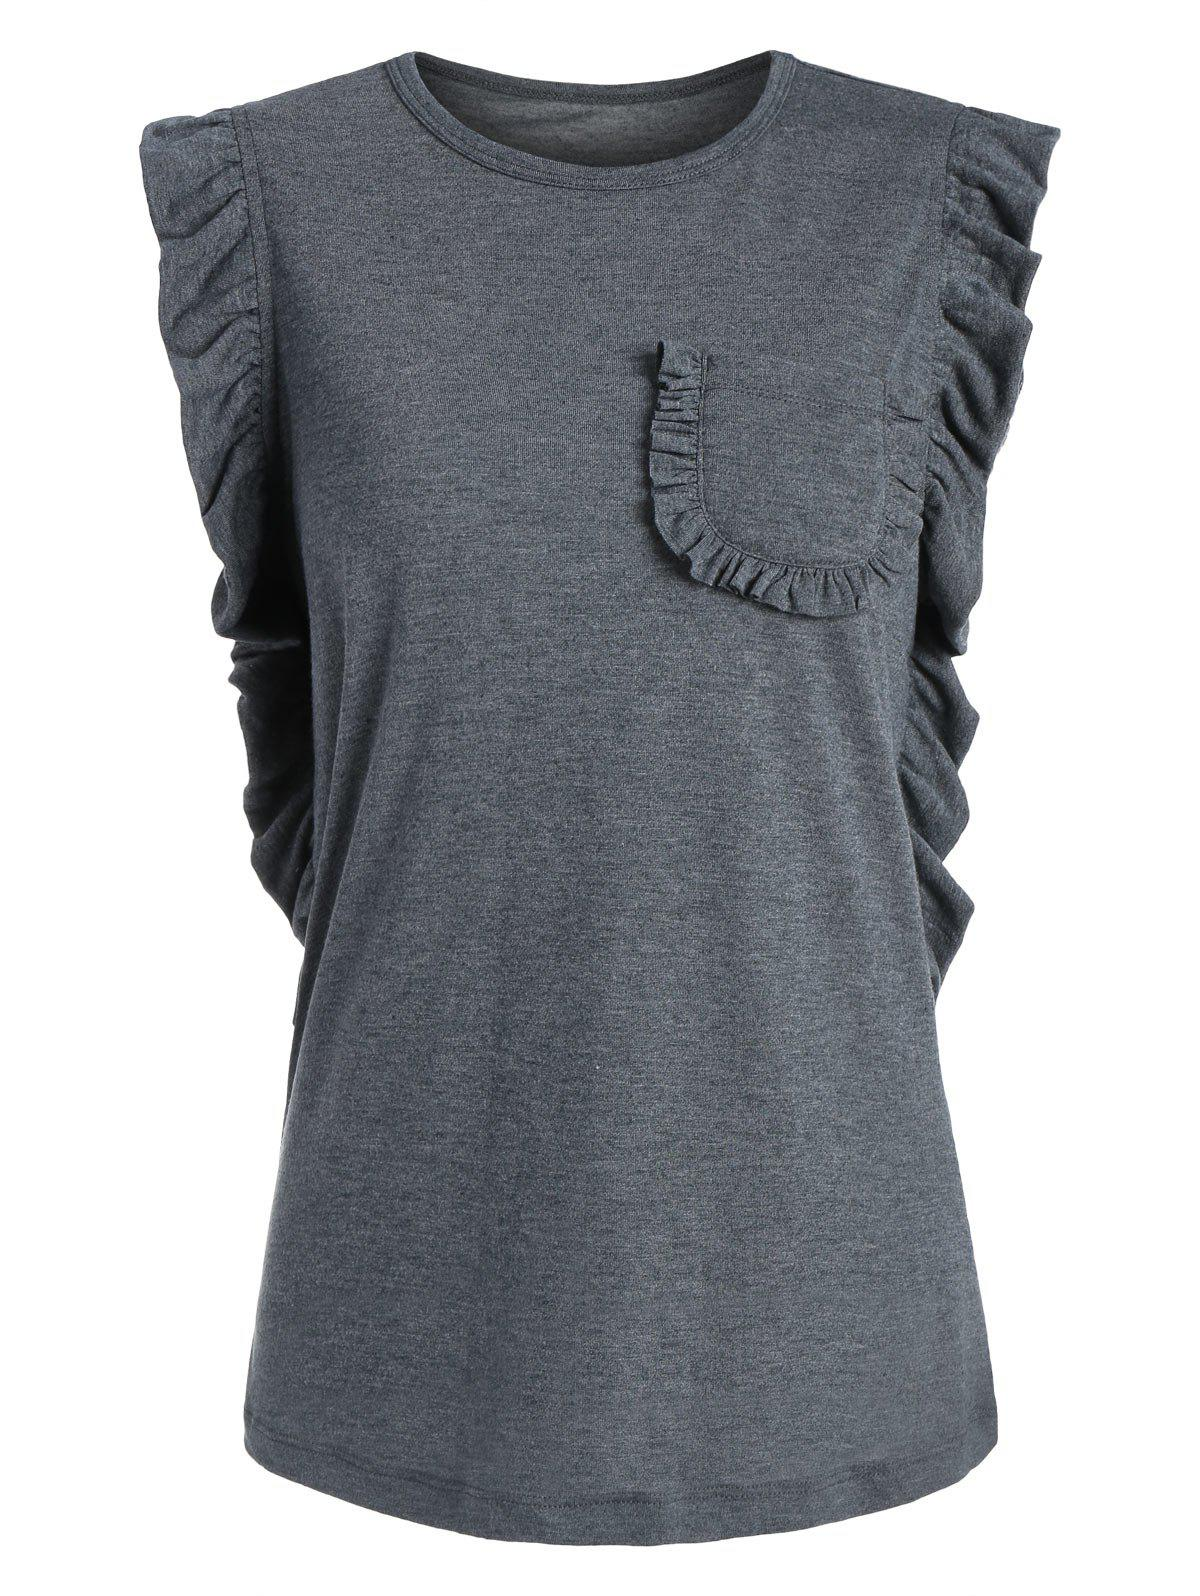 Sleeveless Ruffle T-shirt - GRAY L